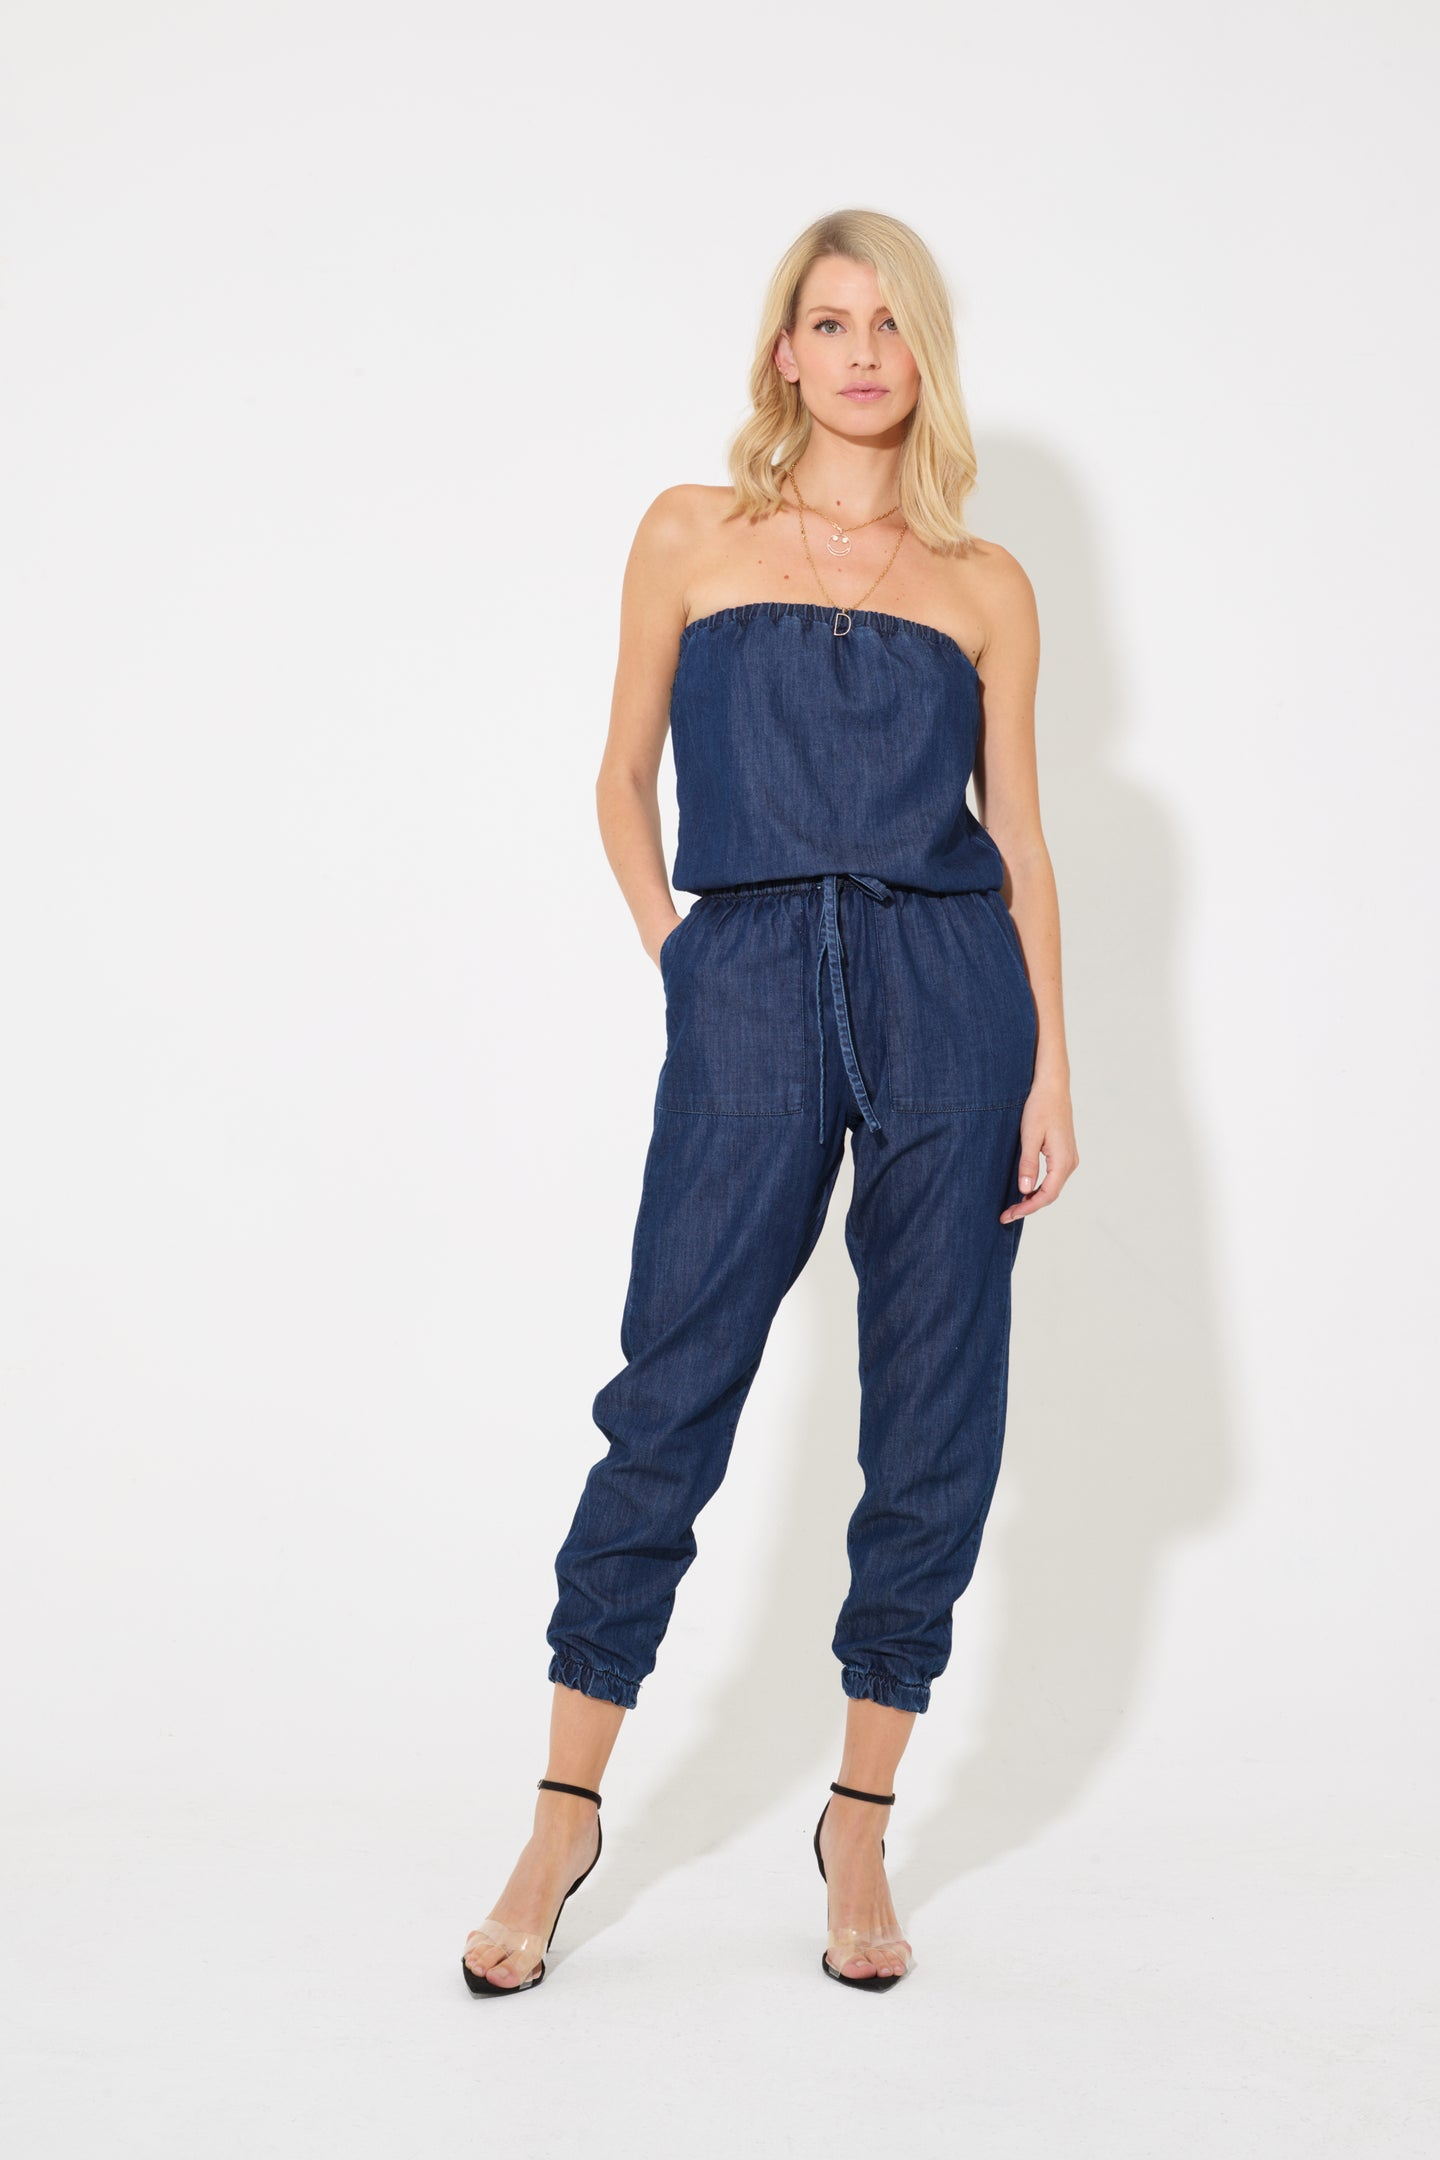 Harlow The Joyful Elasticated Jumpsuit - Summer Loving